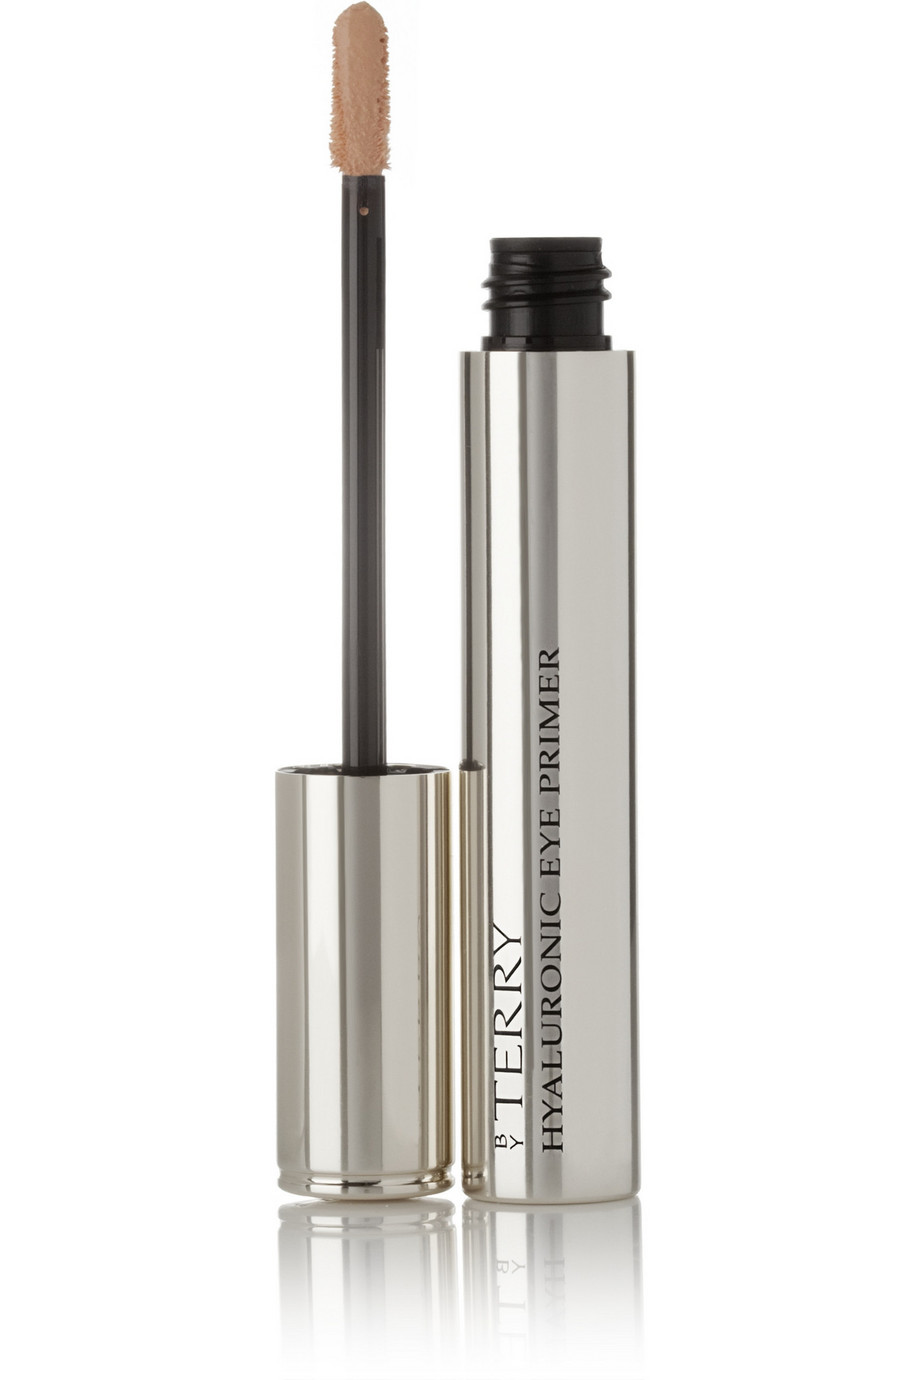 Hyaluronic Eye Primer - Light, 7.5ml, by By Terry